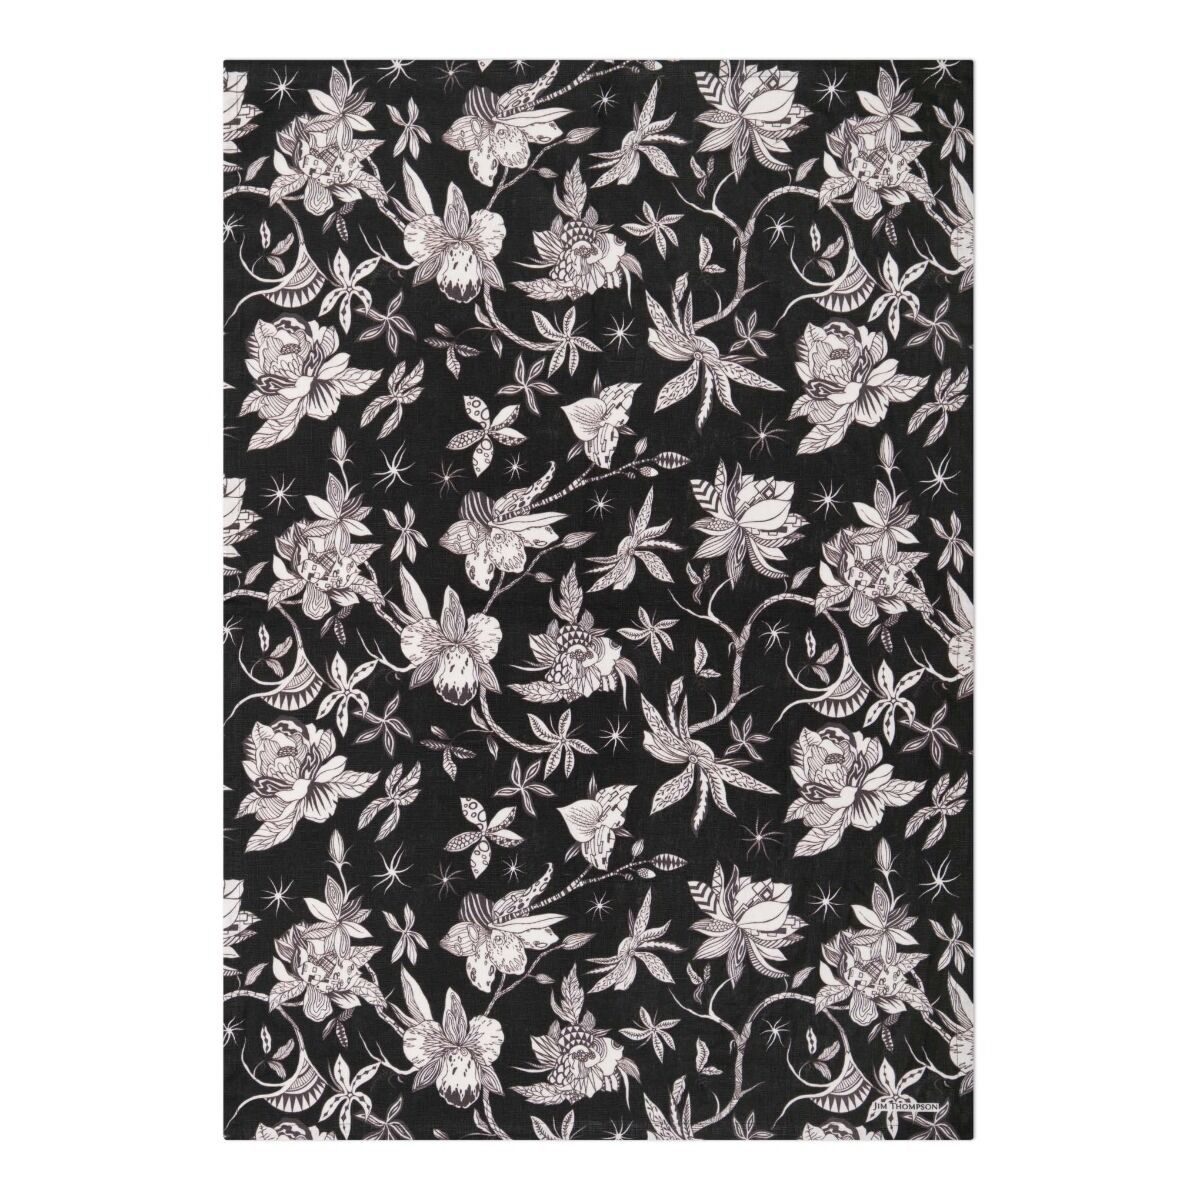 Orchid and Spike Tea Towel - Black